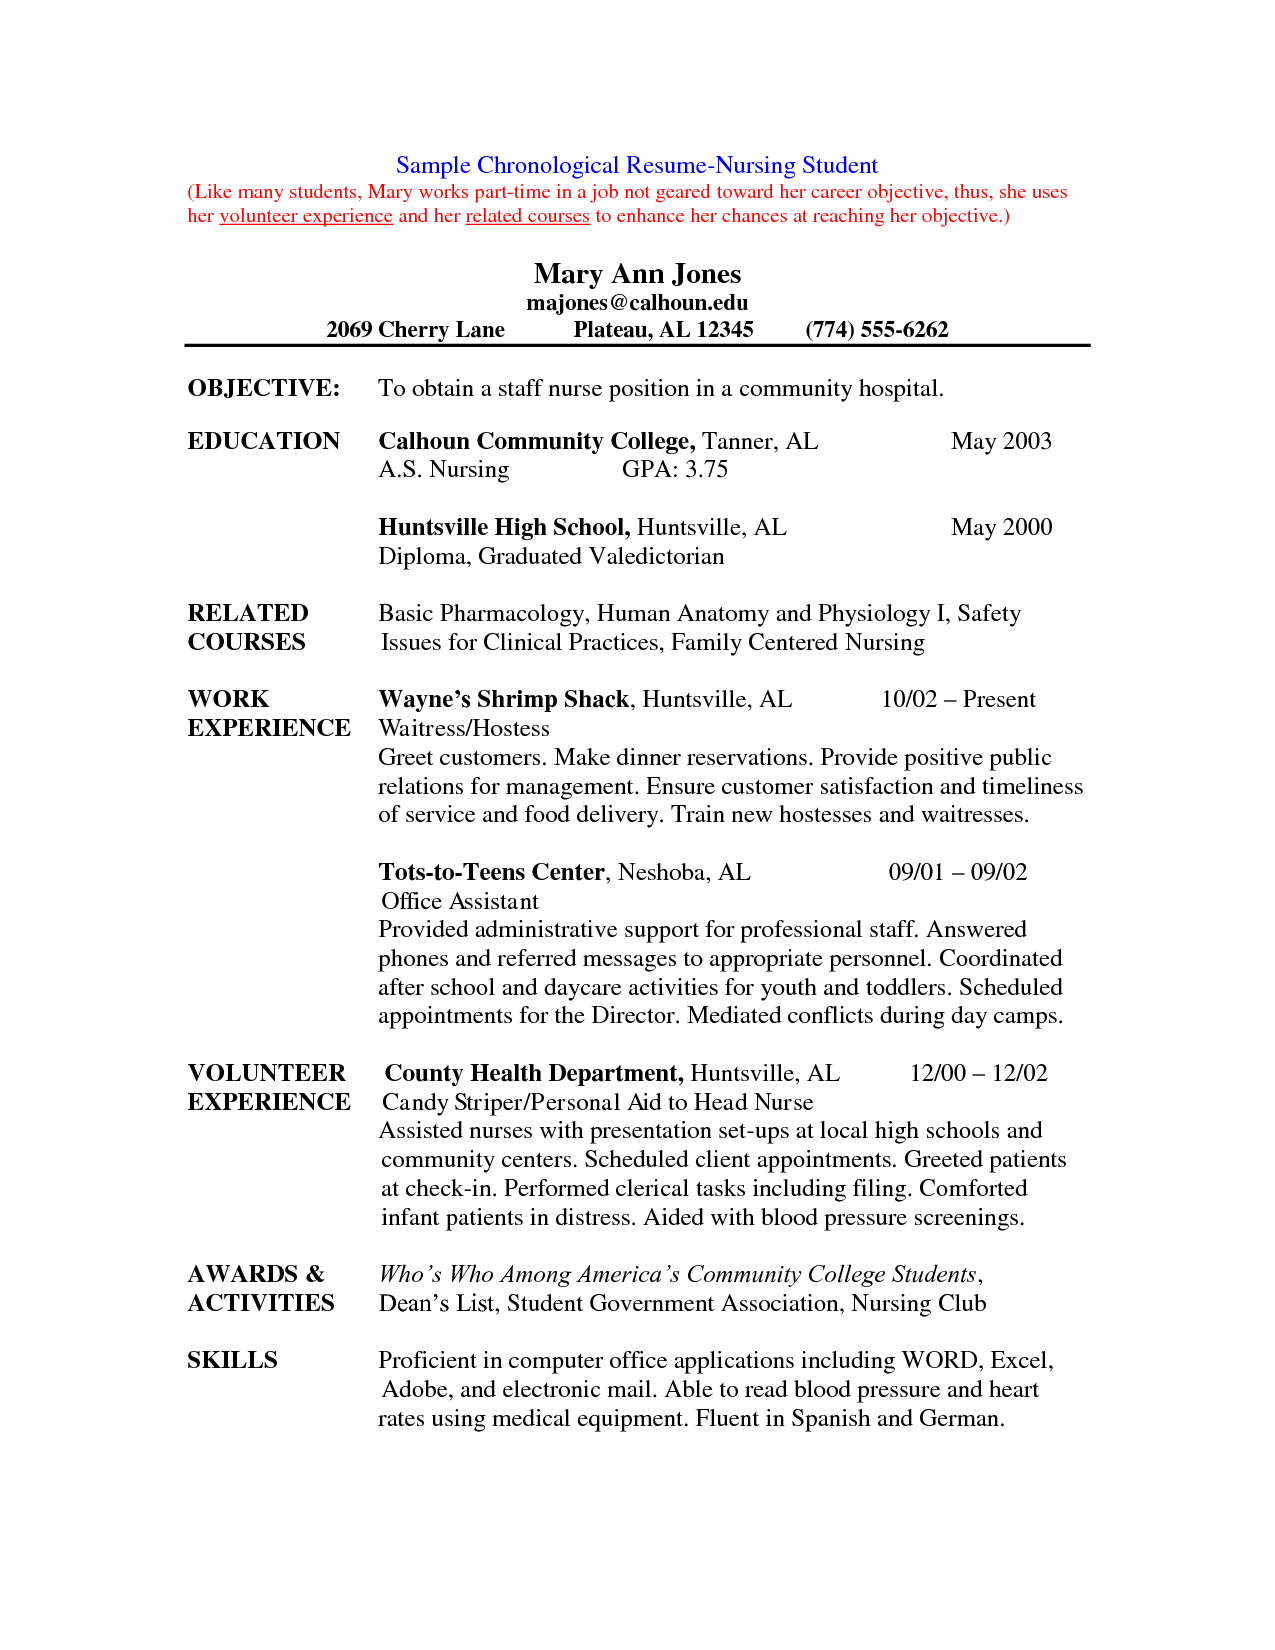 Sample Resumes For Nursing Students  Sample Resumes  Nursing